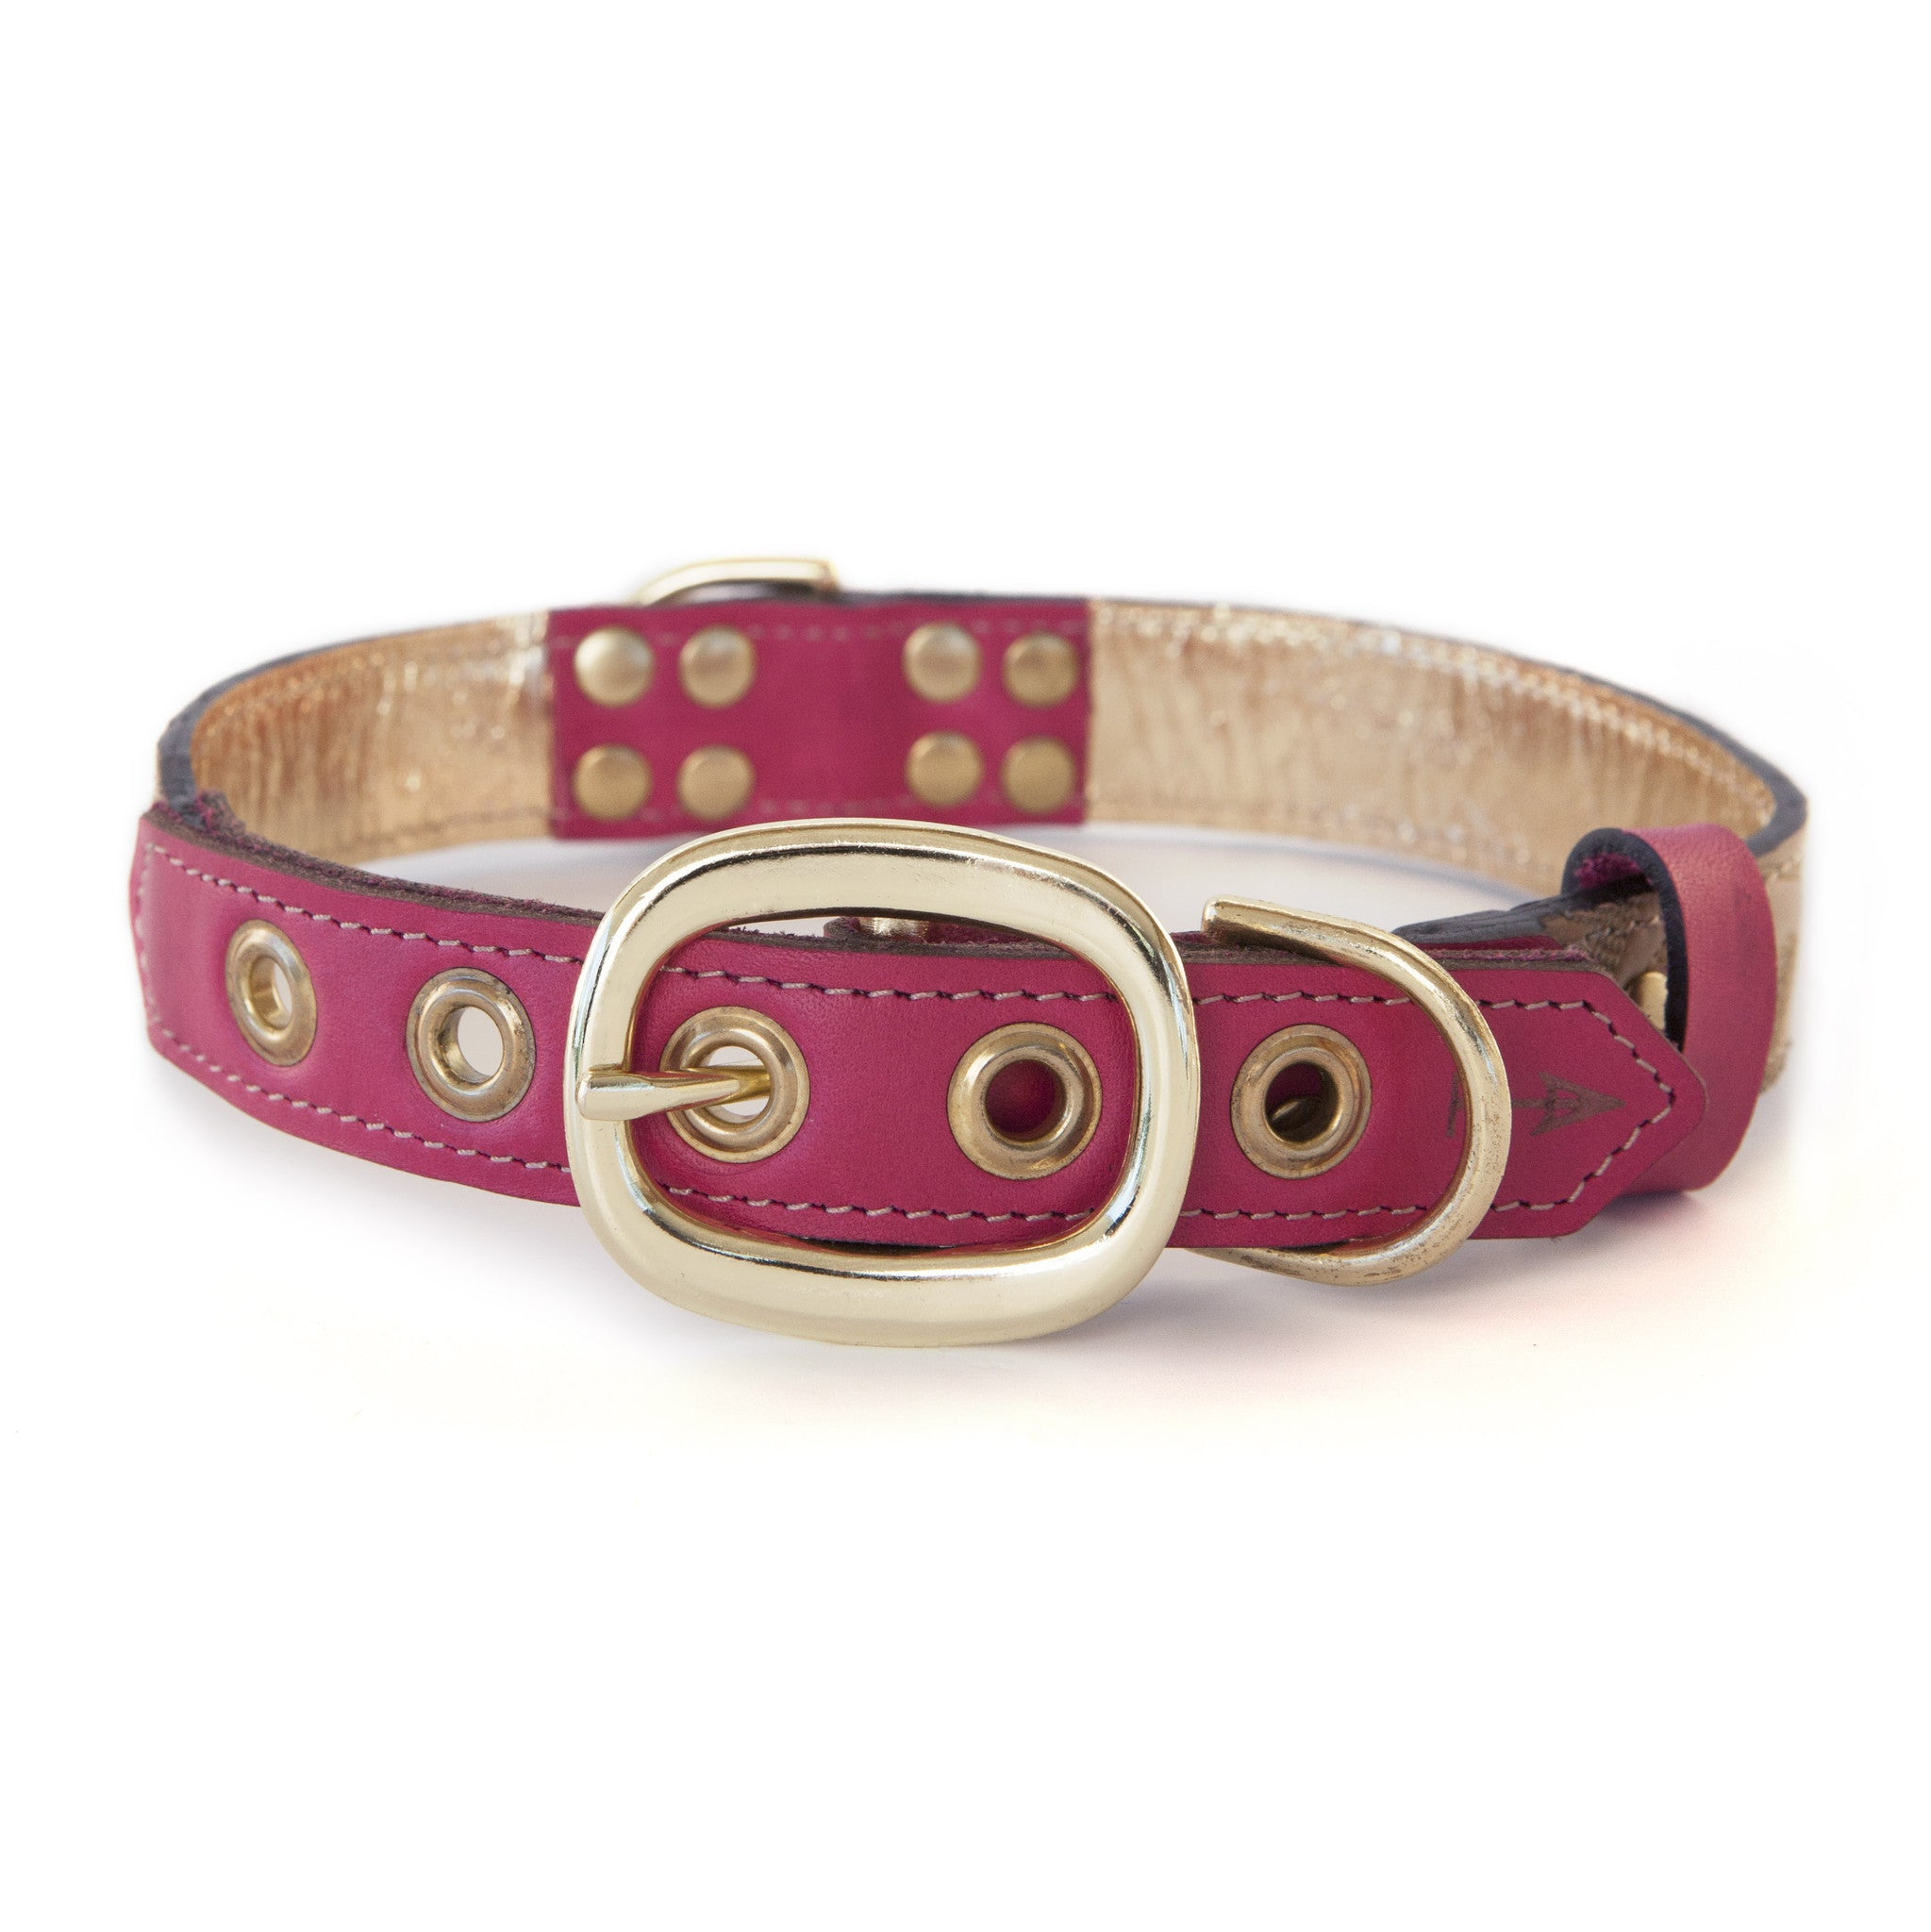 Hot Pink Dog Collar with Light Brown Leather + Tan Stitching (back view)